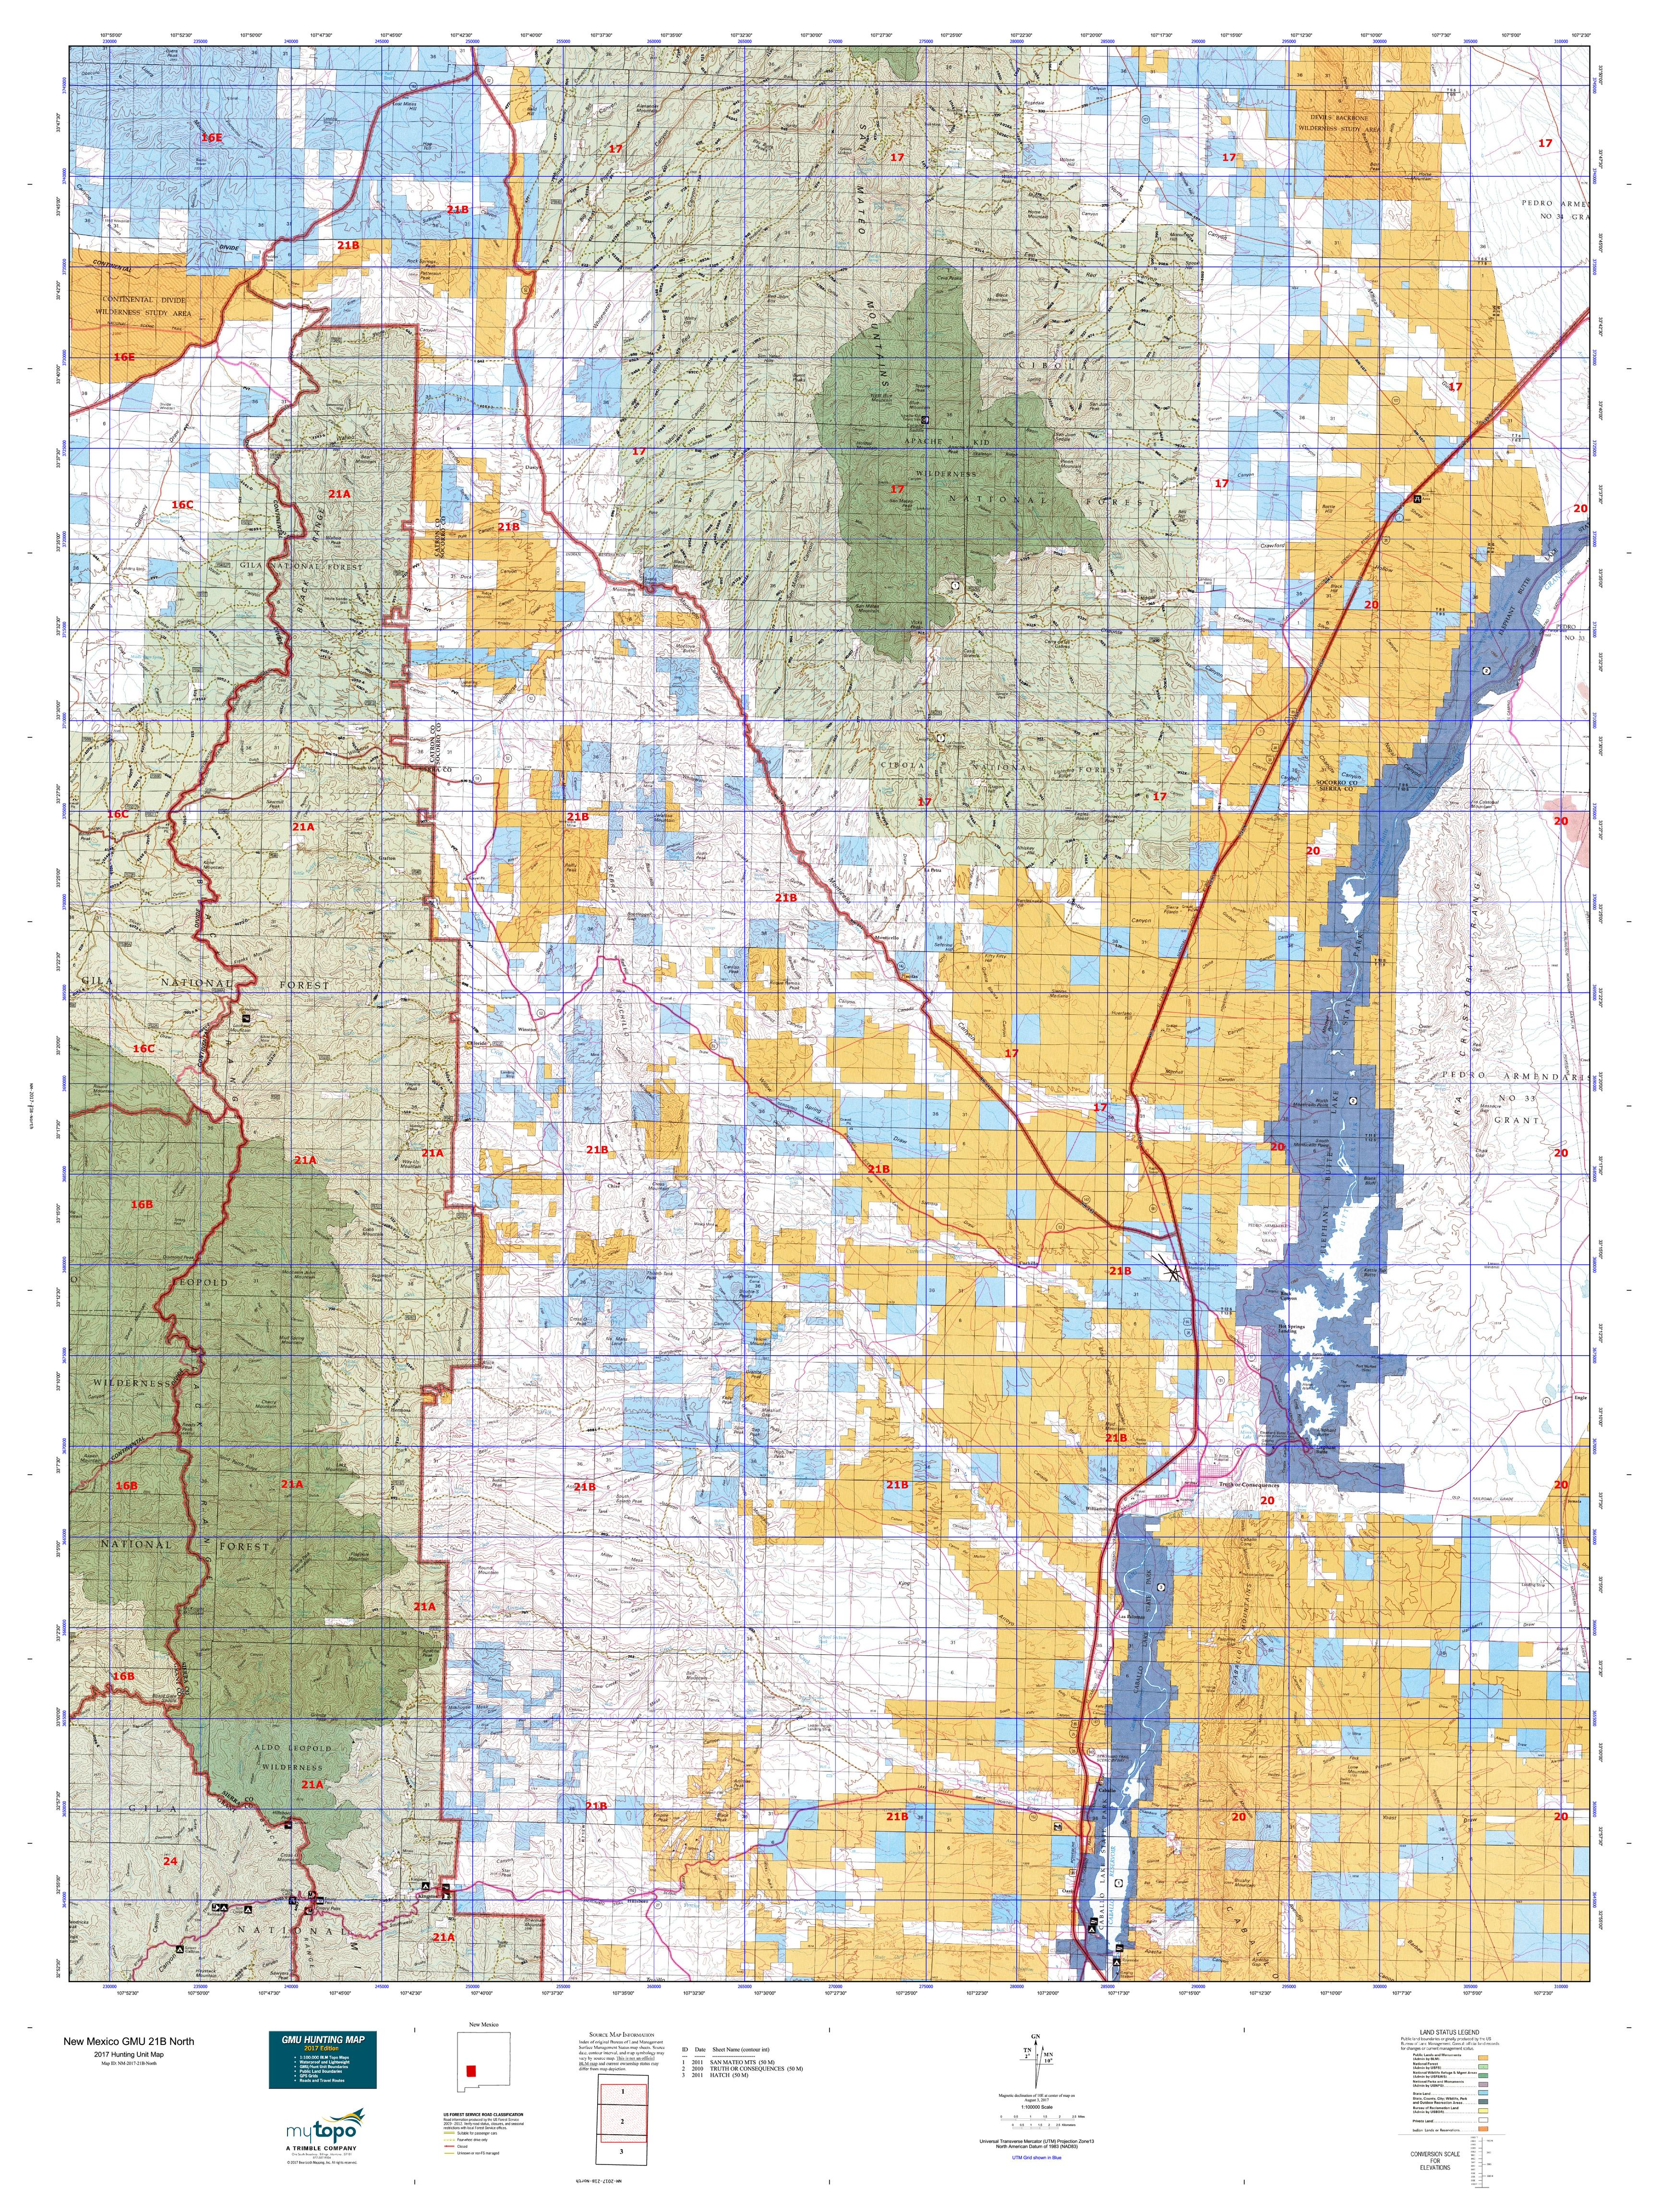 New Mexico GMU B North Map MyTopo - Topographical map of new mexico